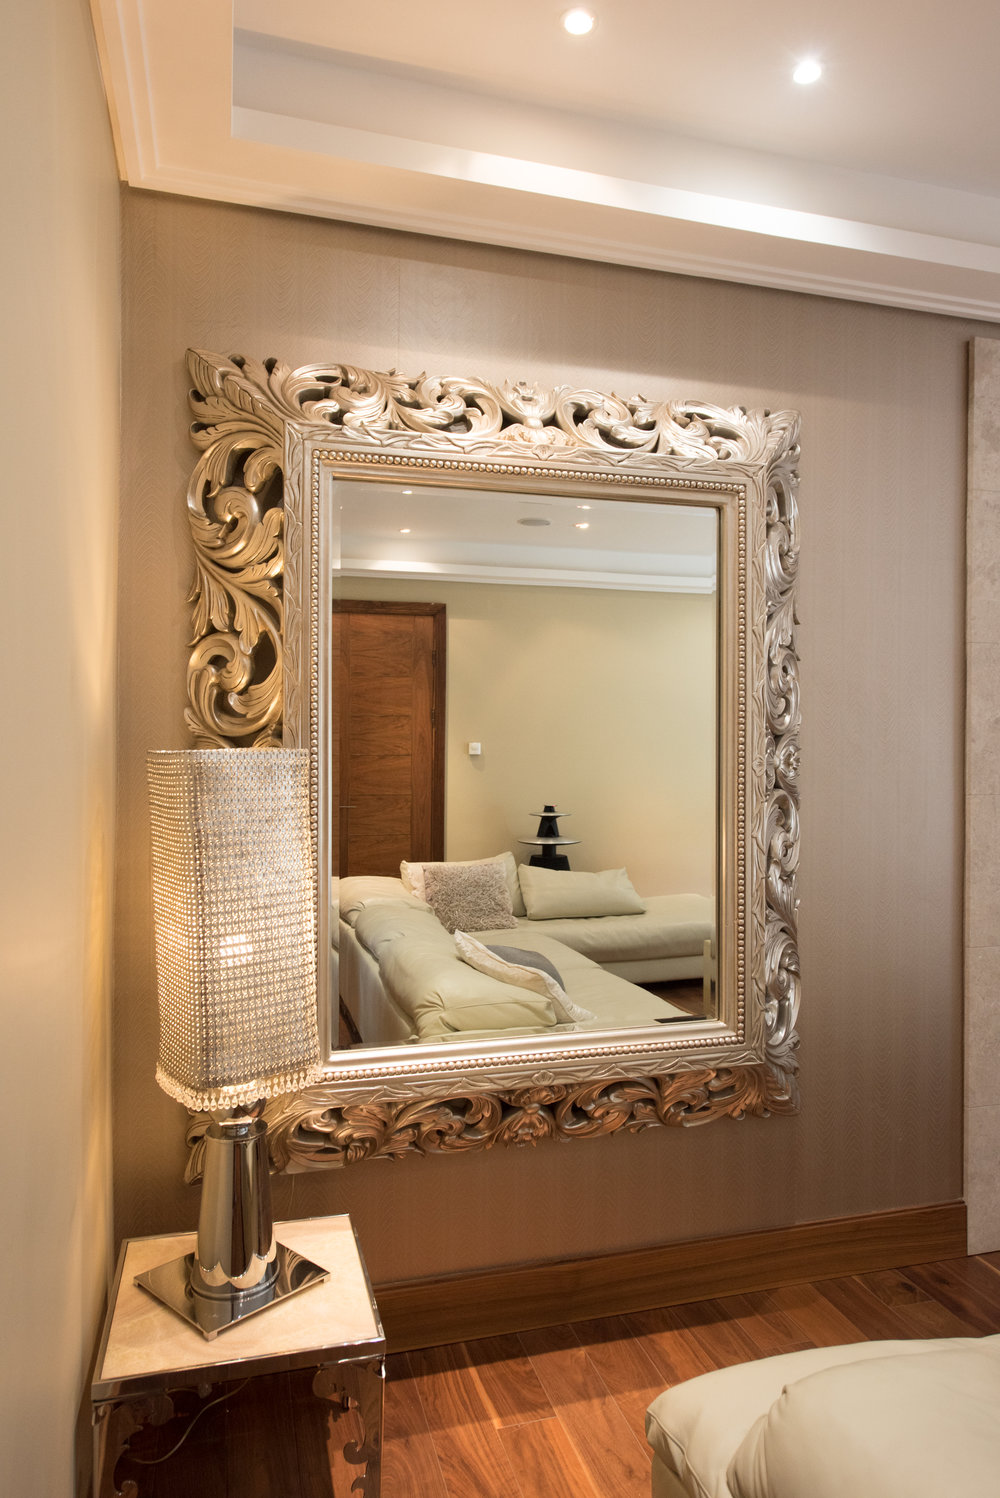 Interior design and style advice - Creating a space that reflects your individual needs and personal style, in full consultation with you.